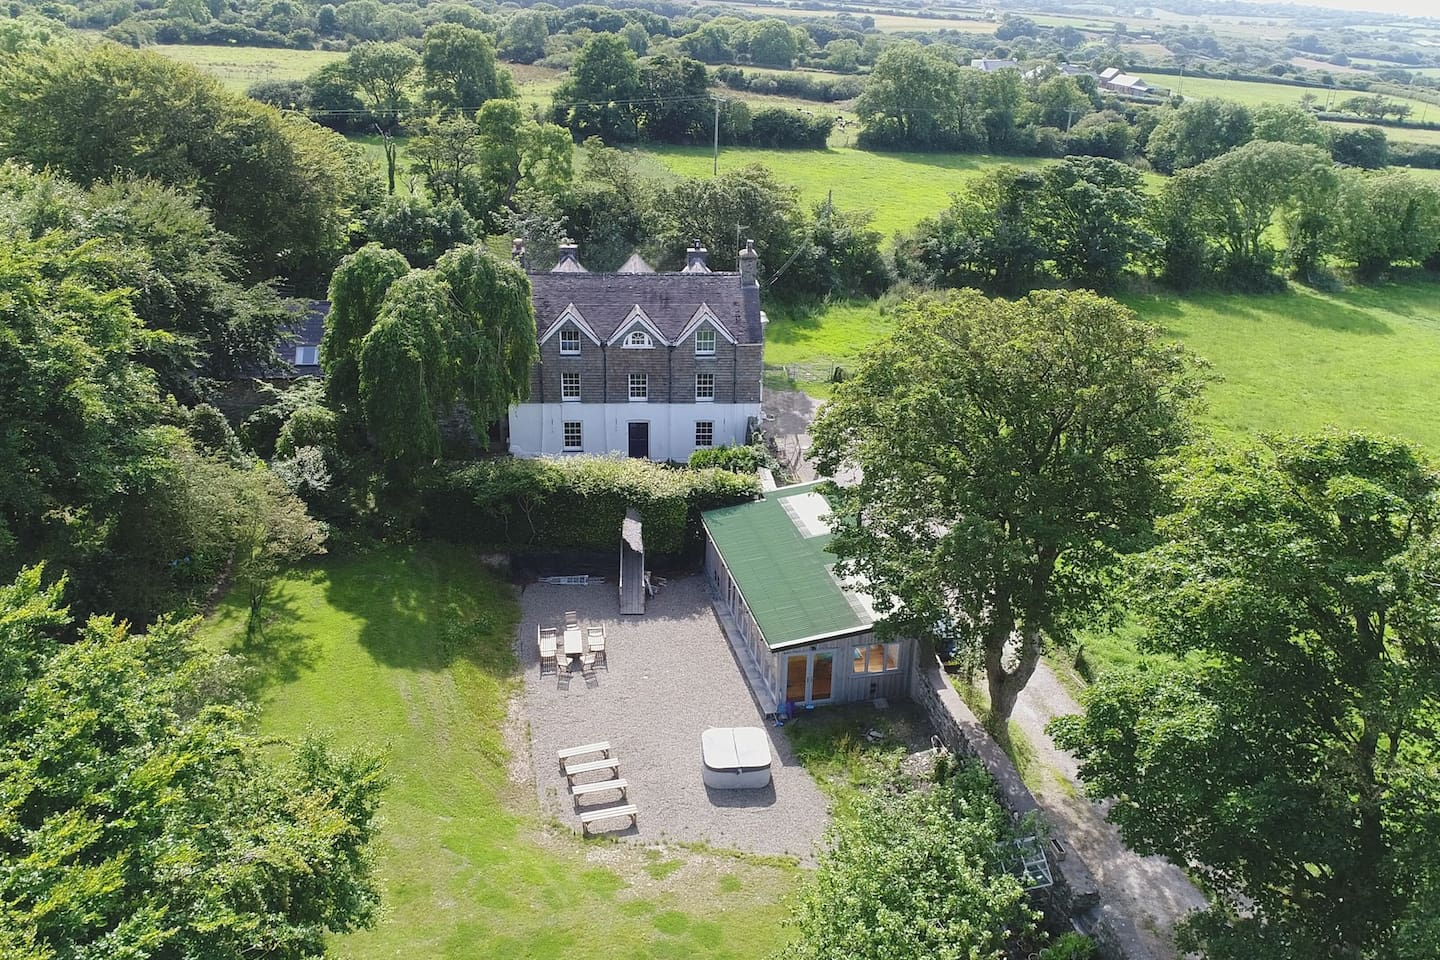 Exclusive use of the Rectory, Retreat Cottage, Huge new Games/Function Room and Hot Tub